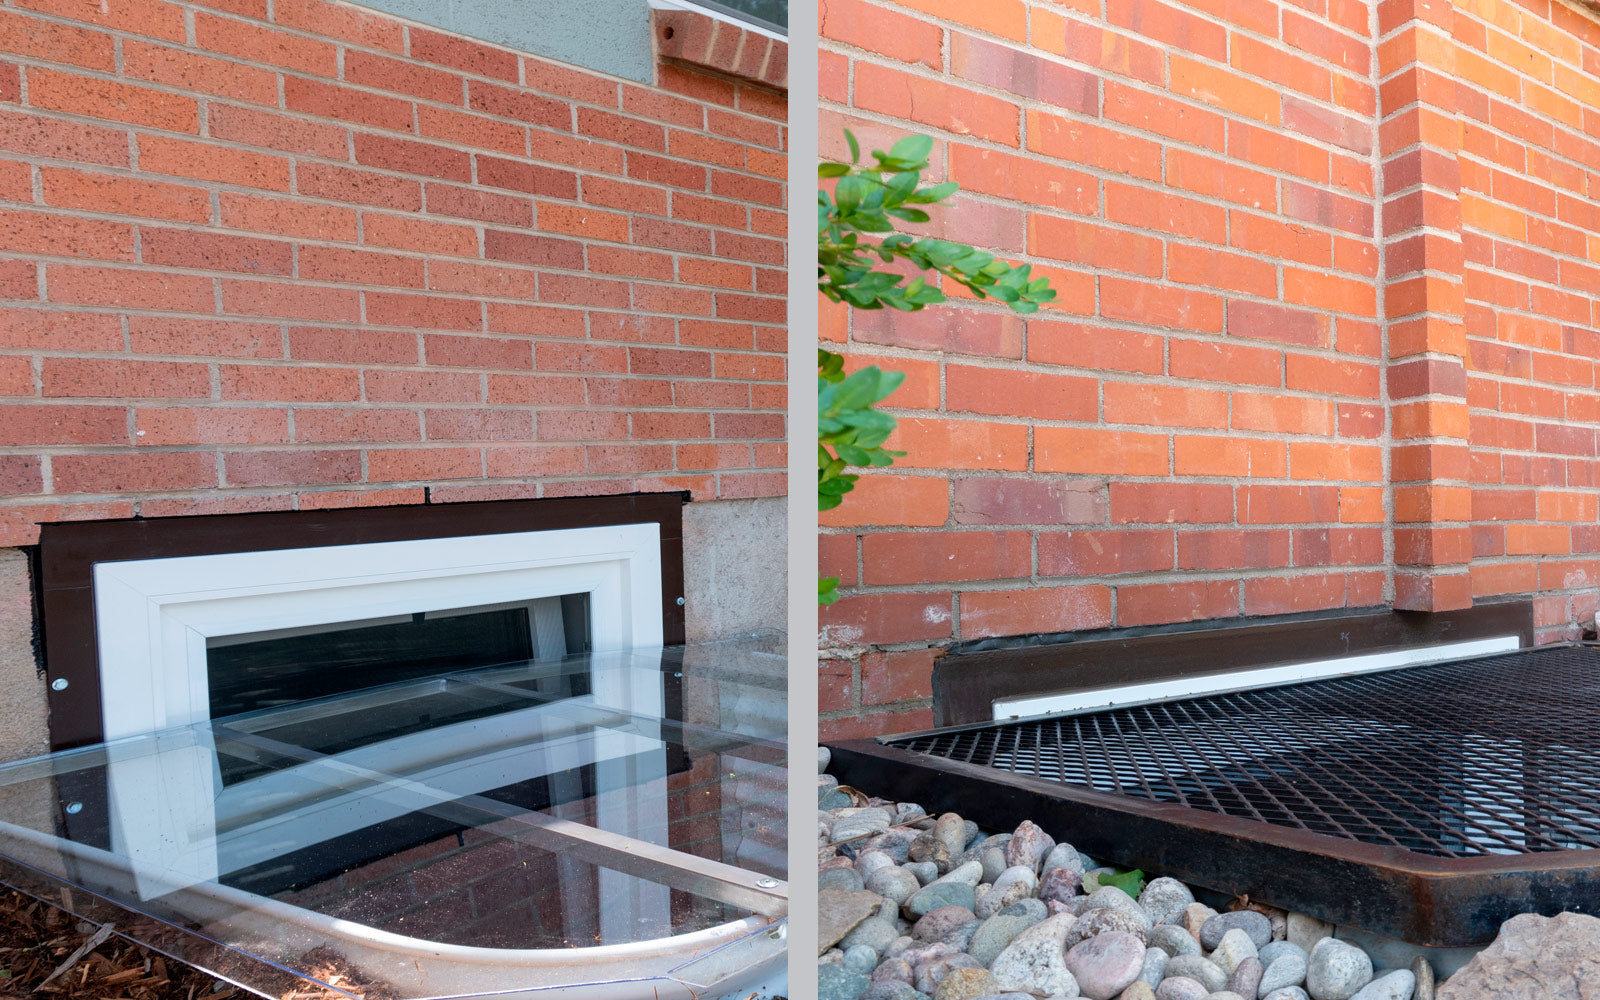 window well cover vs grate